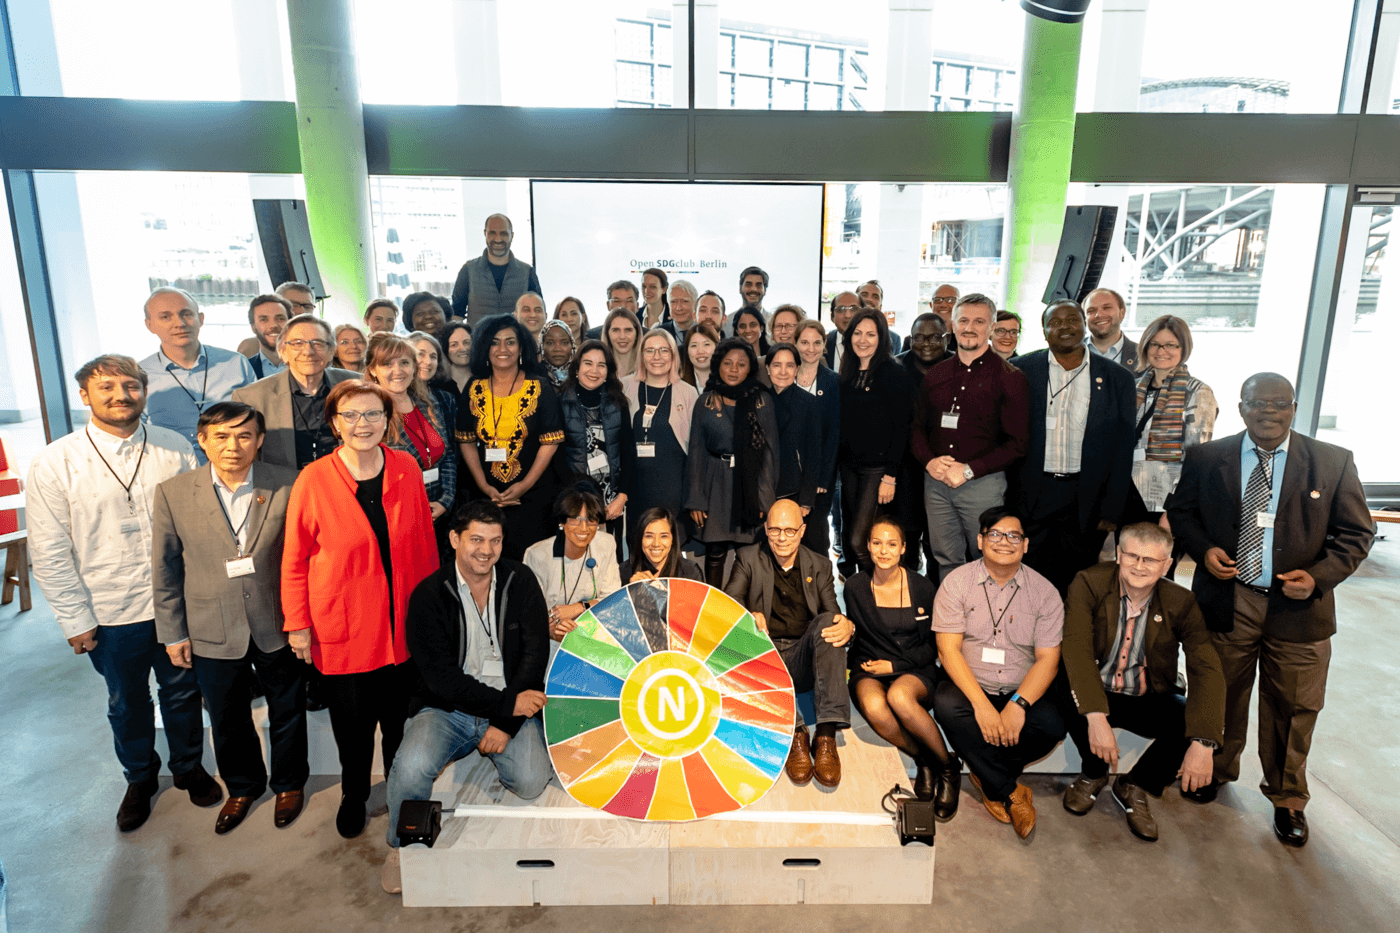 Open SDGclub.Berlin 2019 participants - Photo: Svea Pietschmann, © German Council for Sustainable Development